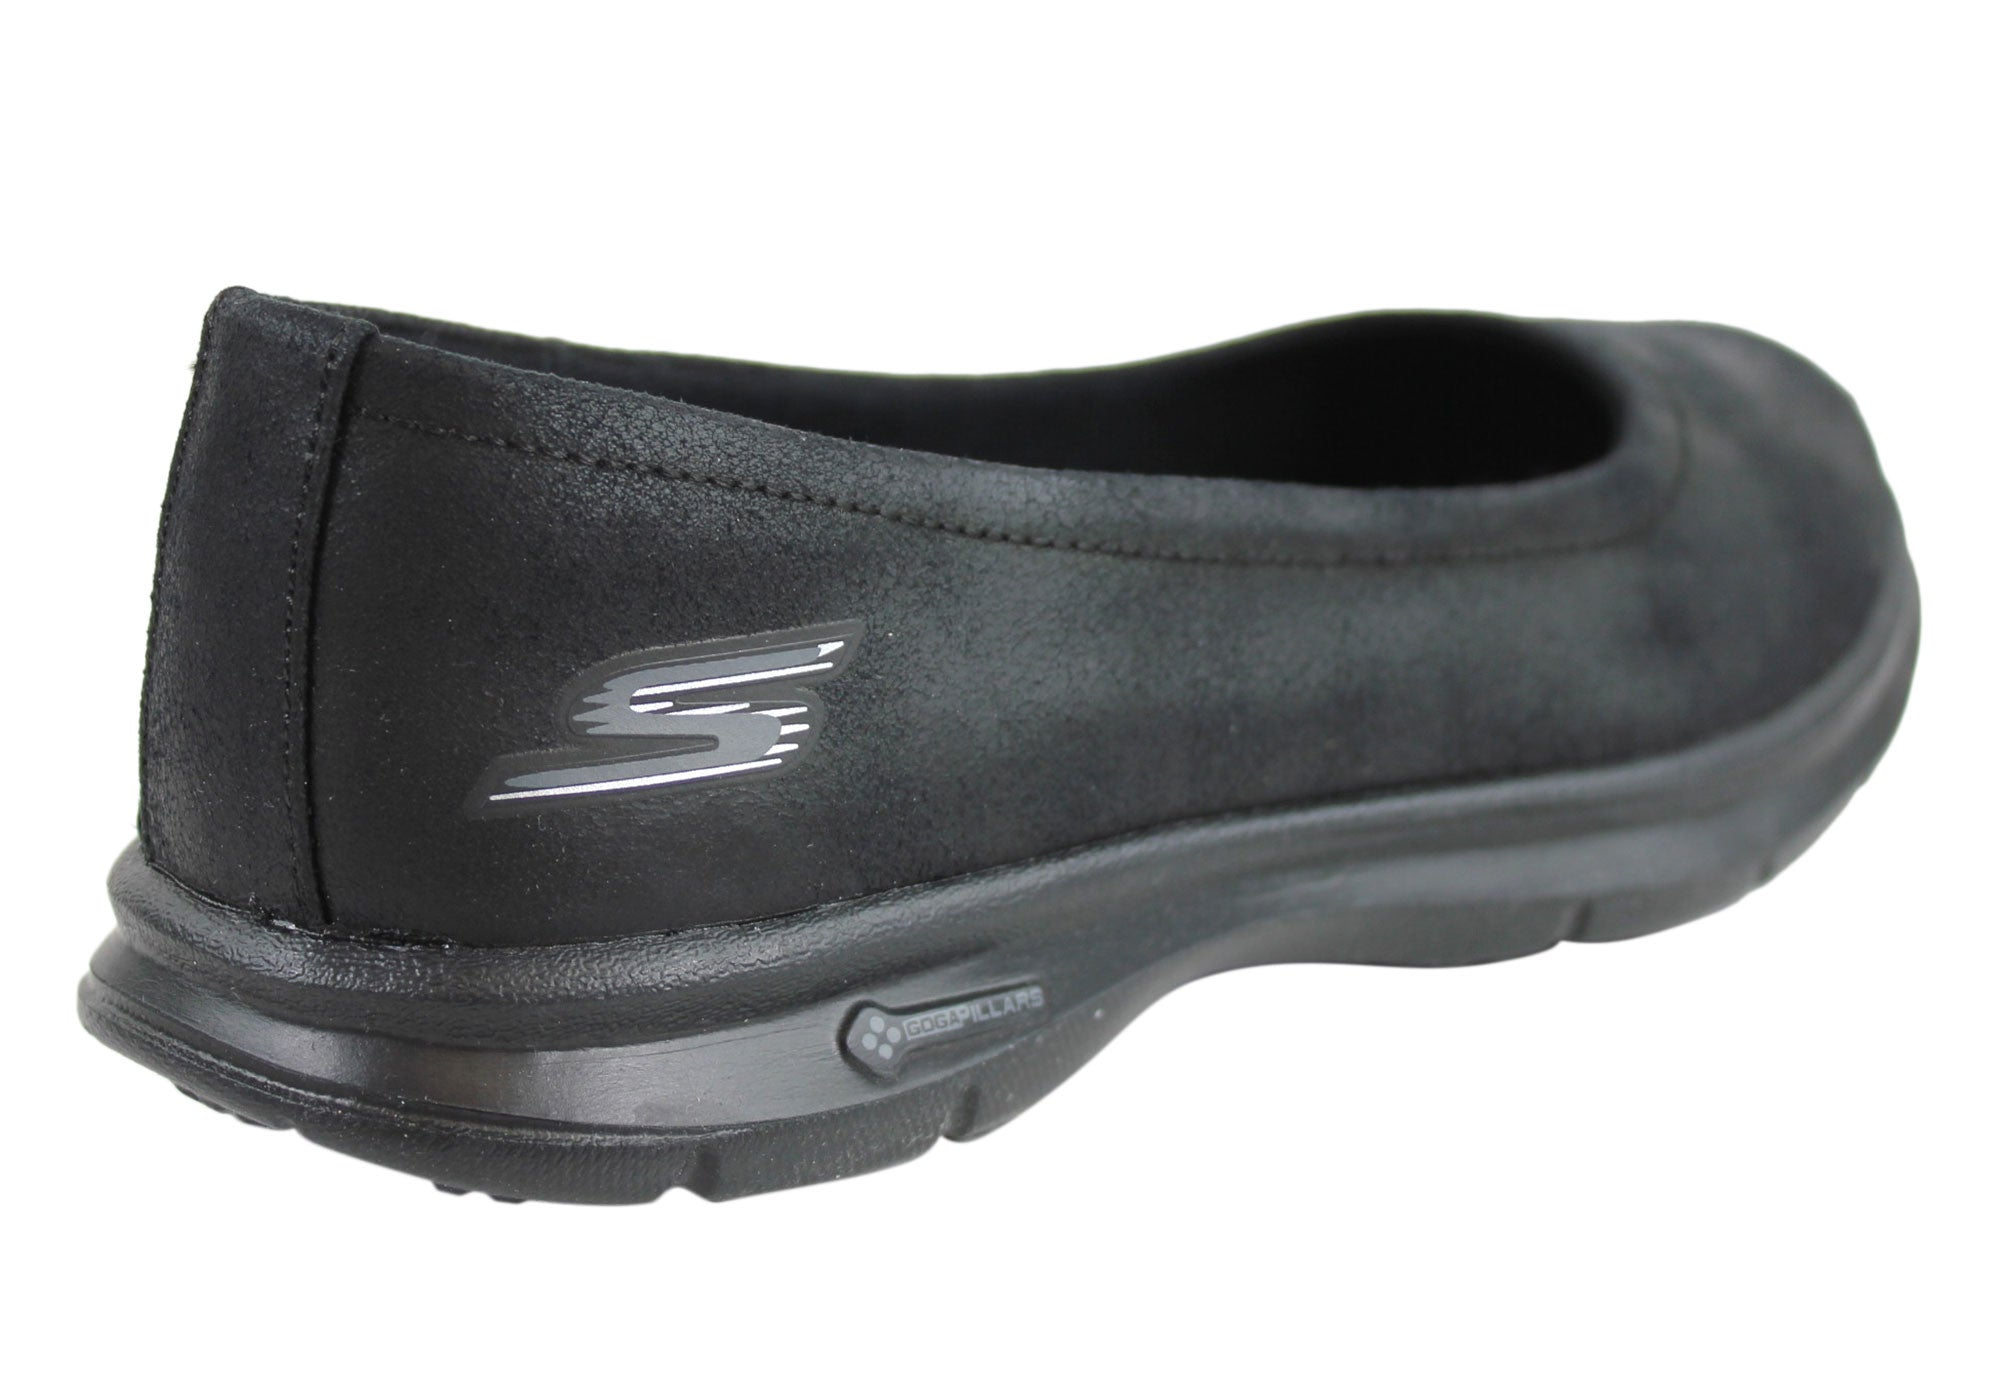 ed1dc6bd7ab0 Skechers Go Step Distinguished Womens Comfortable Cushioned Flat ...